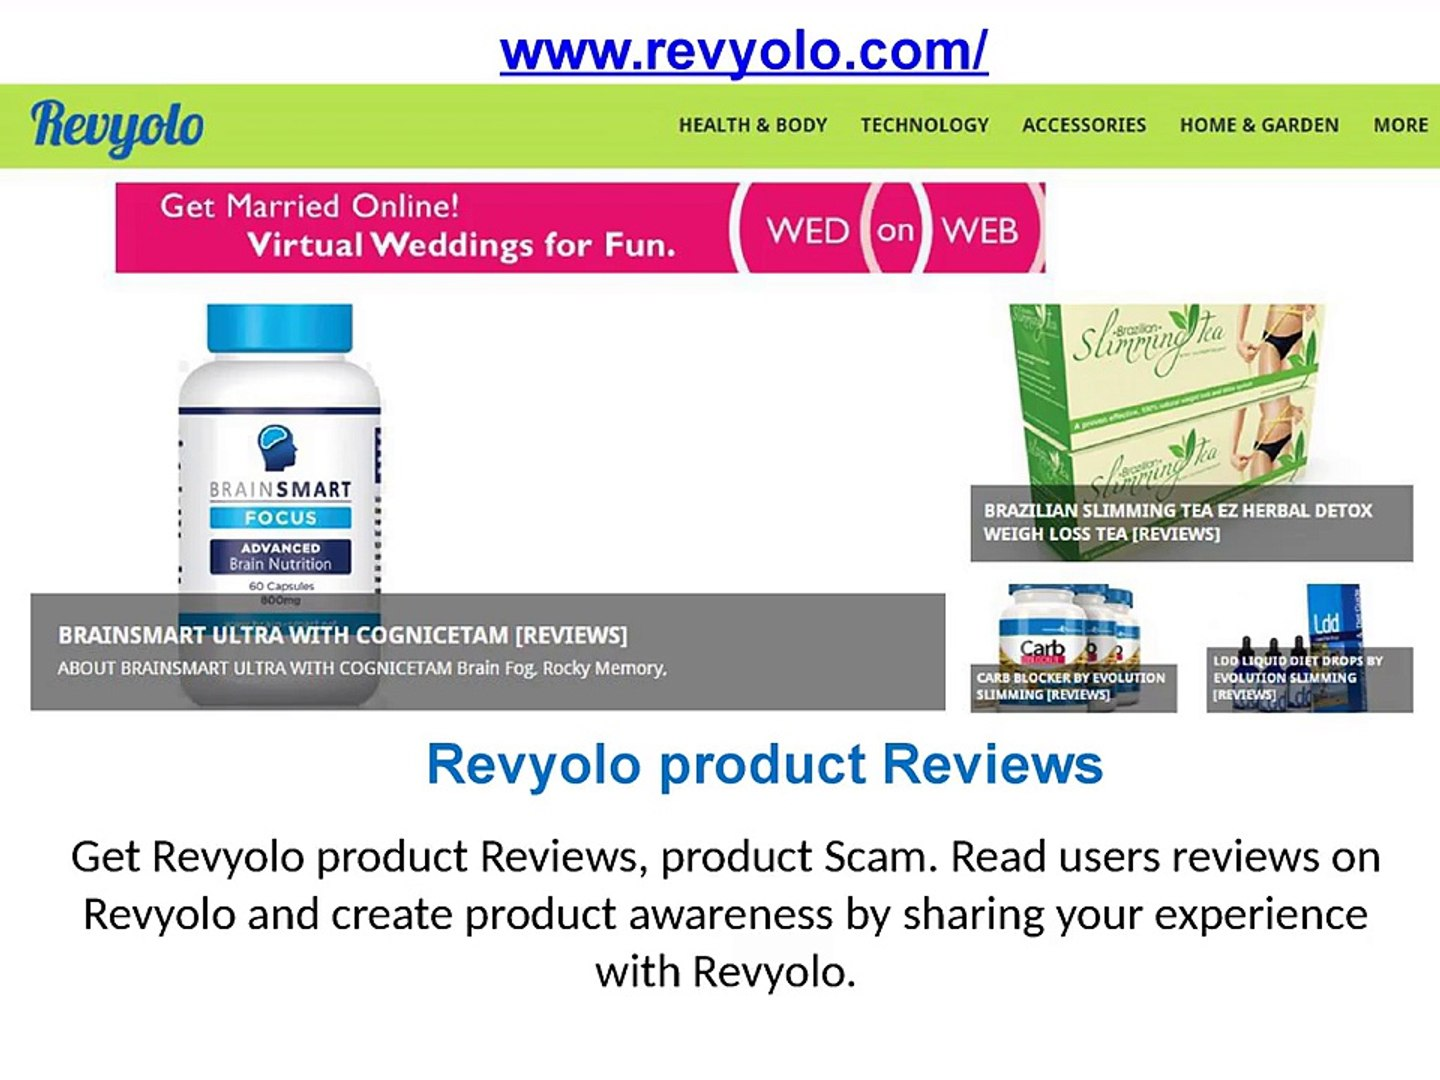 Revyolo Products Reviews